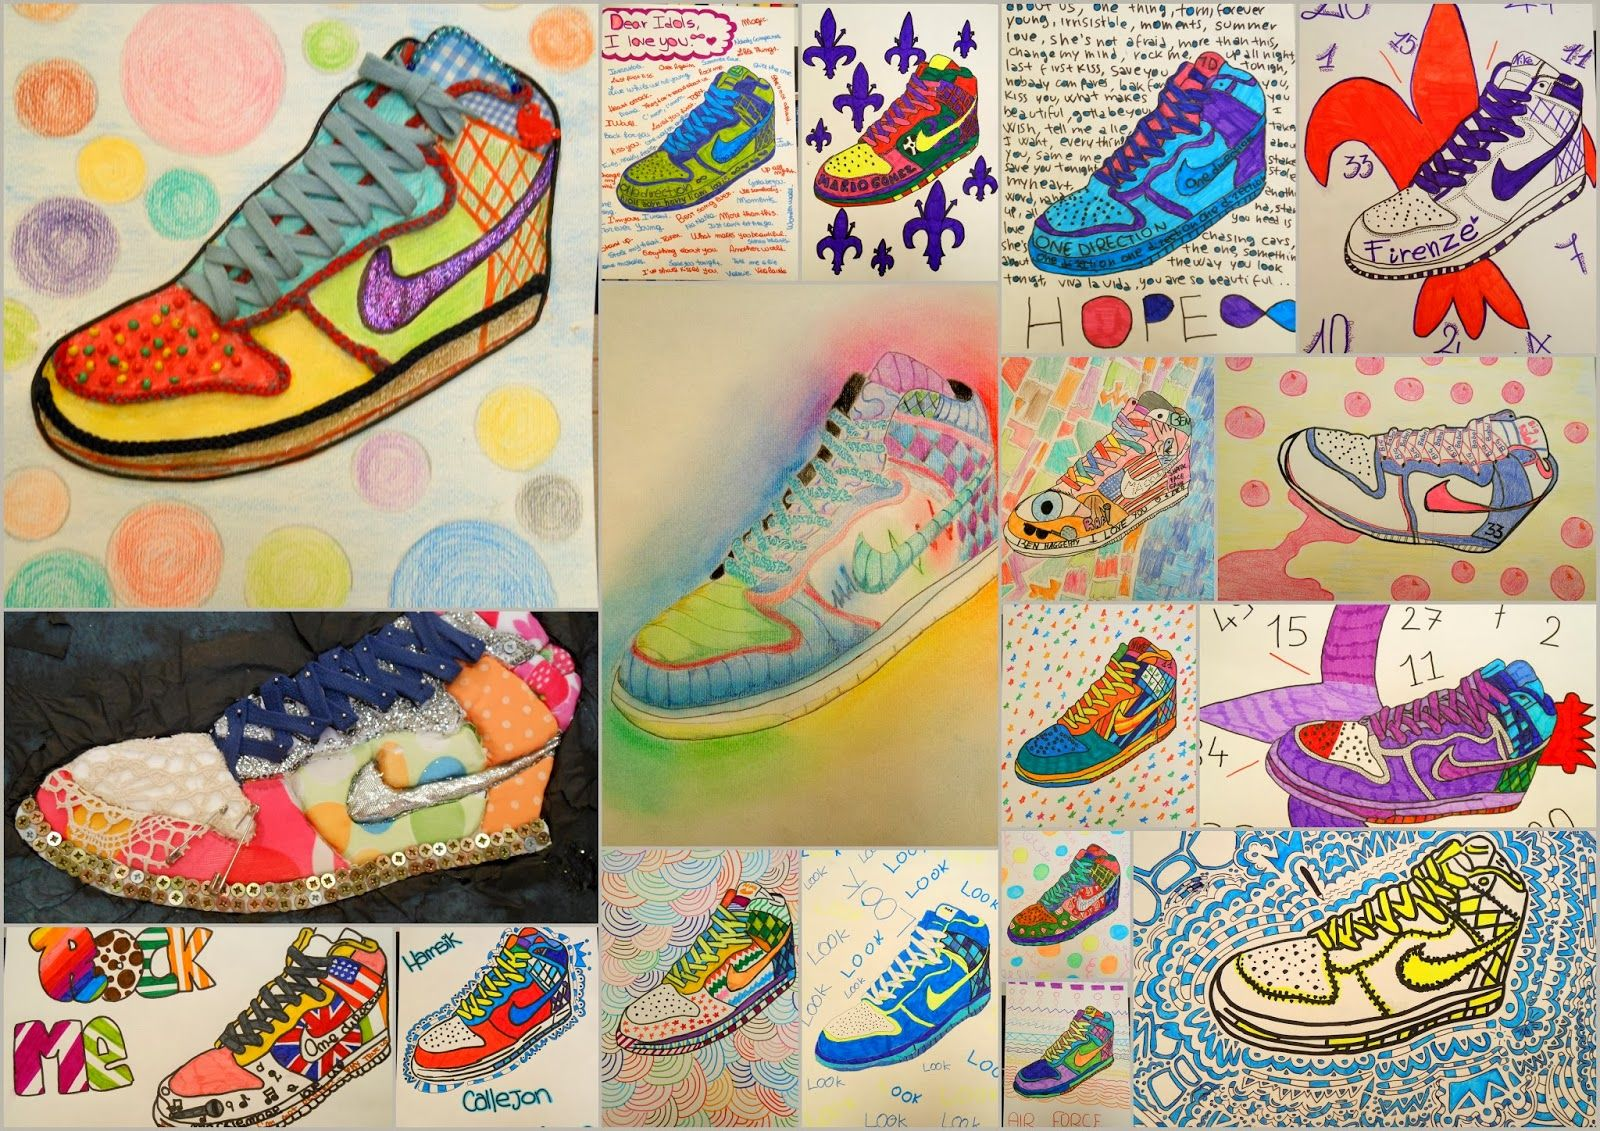 Contour Line Drawing Shoes Lesson Plan : Shoe art by middle high school students. great inspiration for our